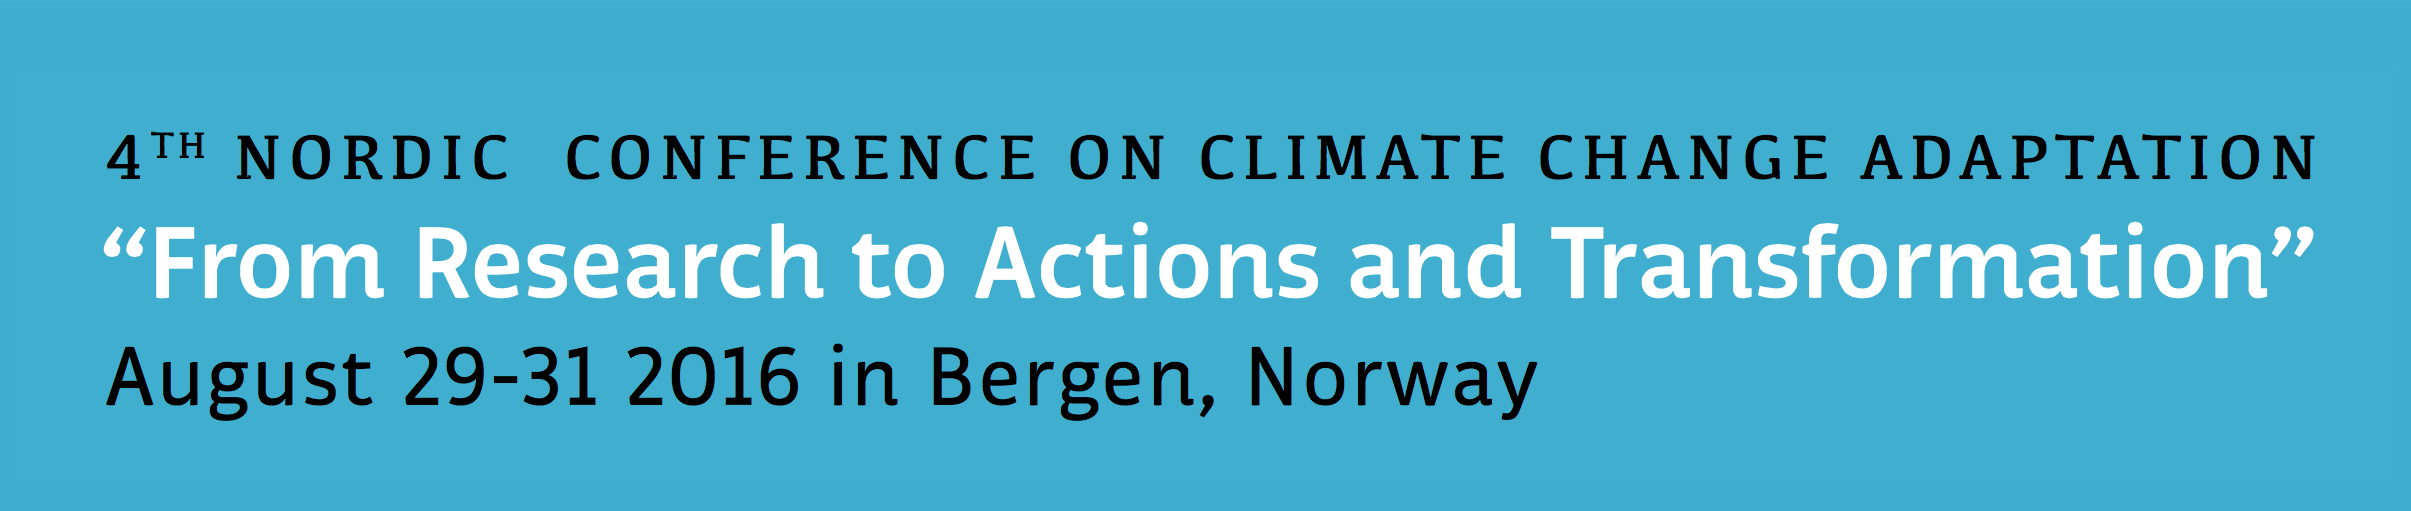 4th Nordic Conference on Climate Change Adaptation - banner